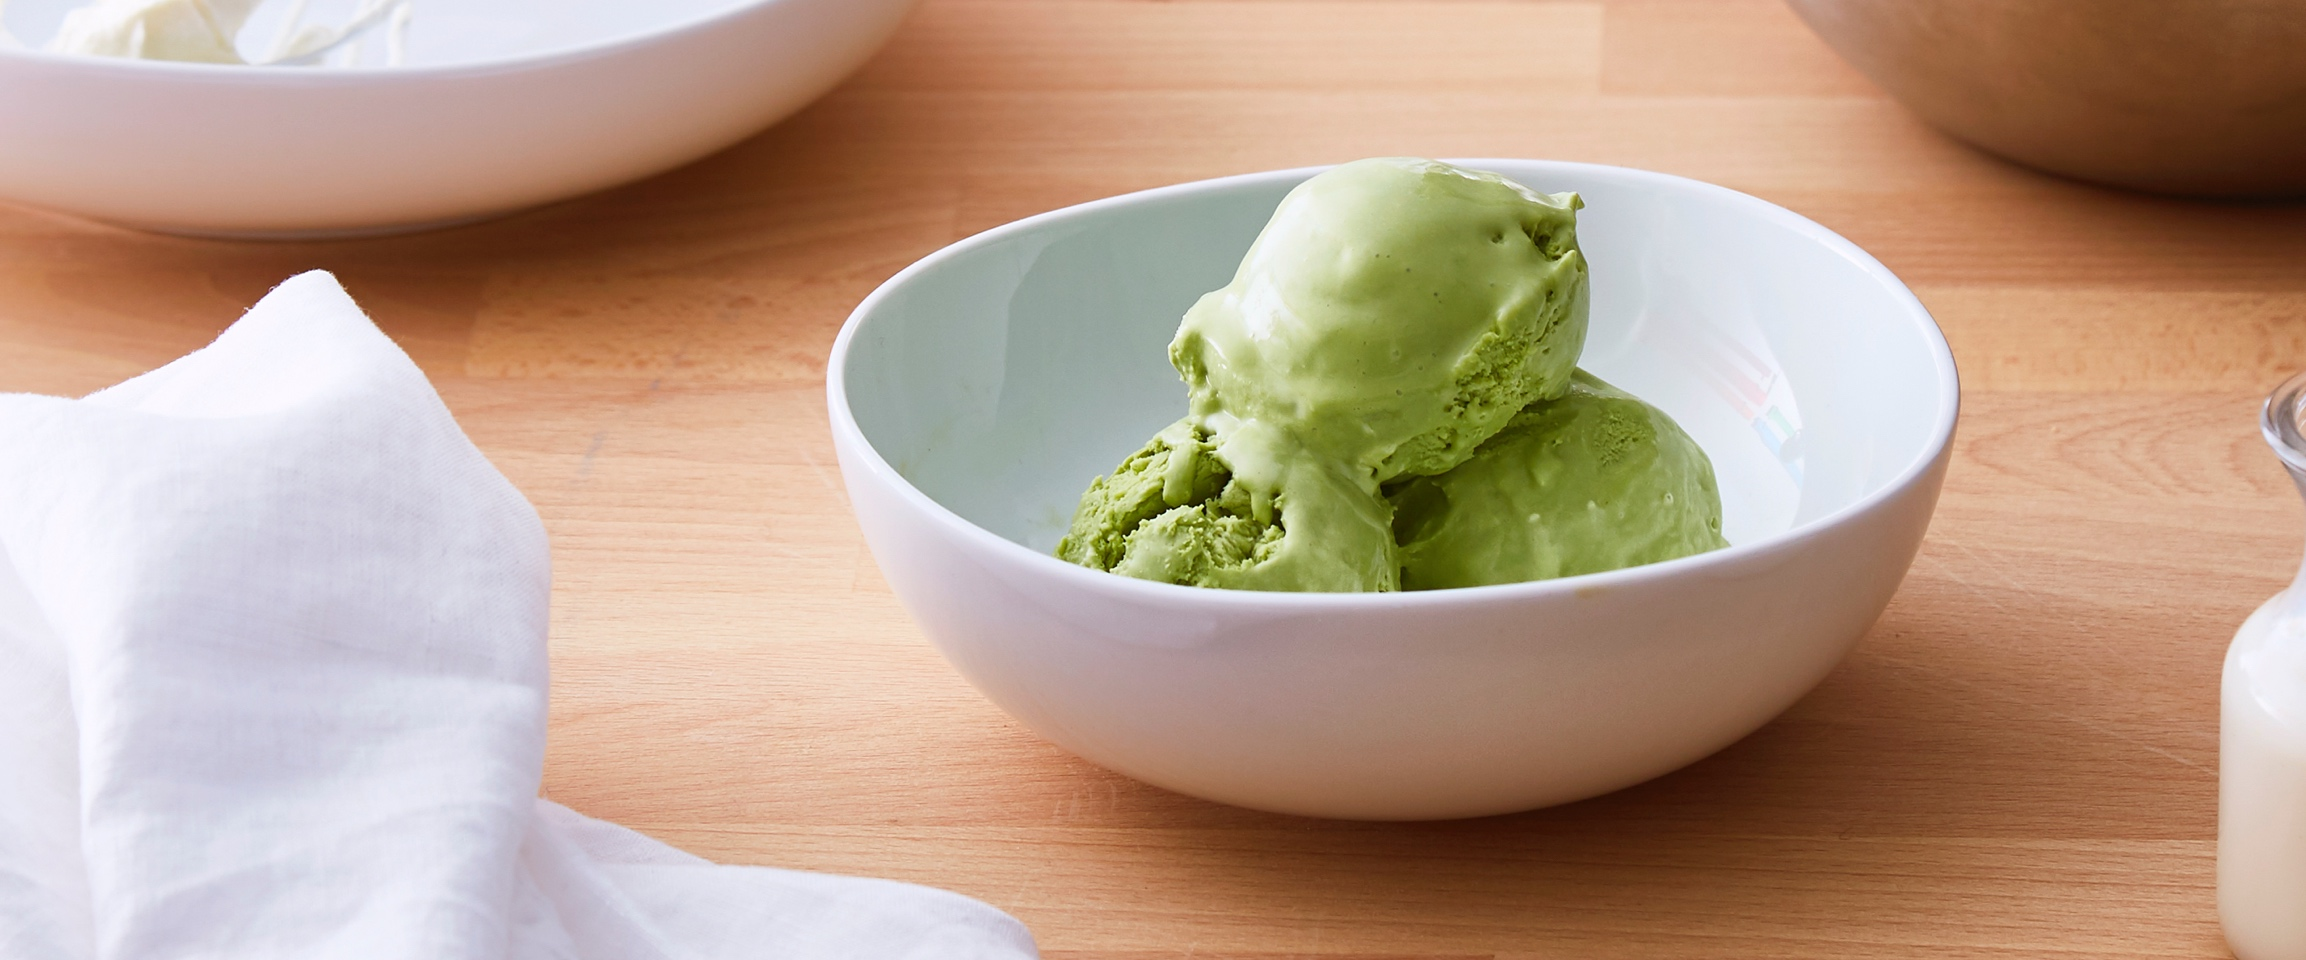 Matcha ice cream in a white bowl.